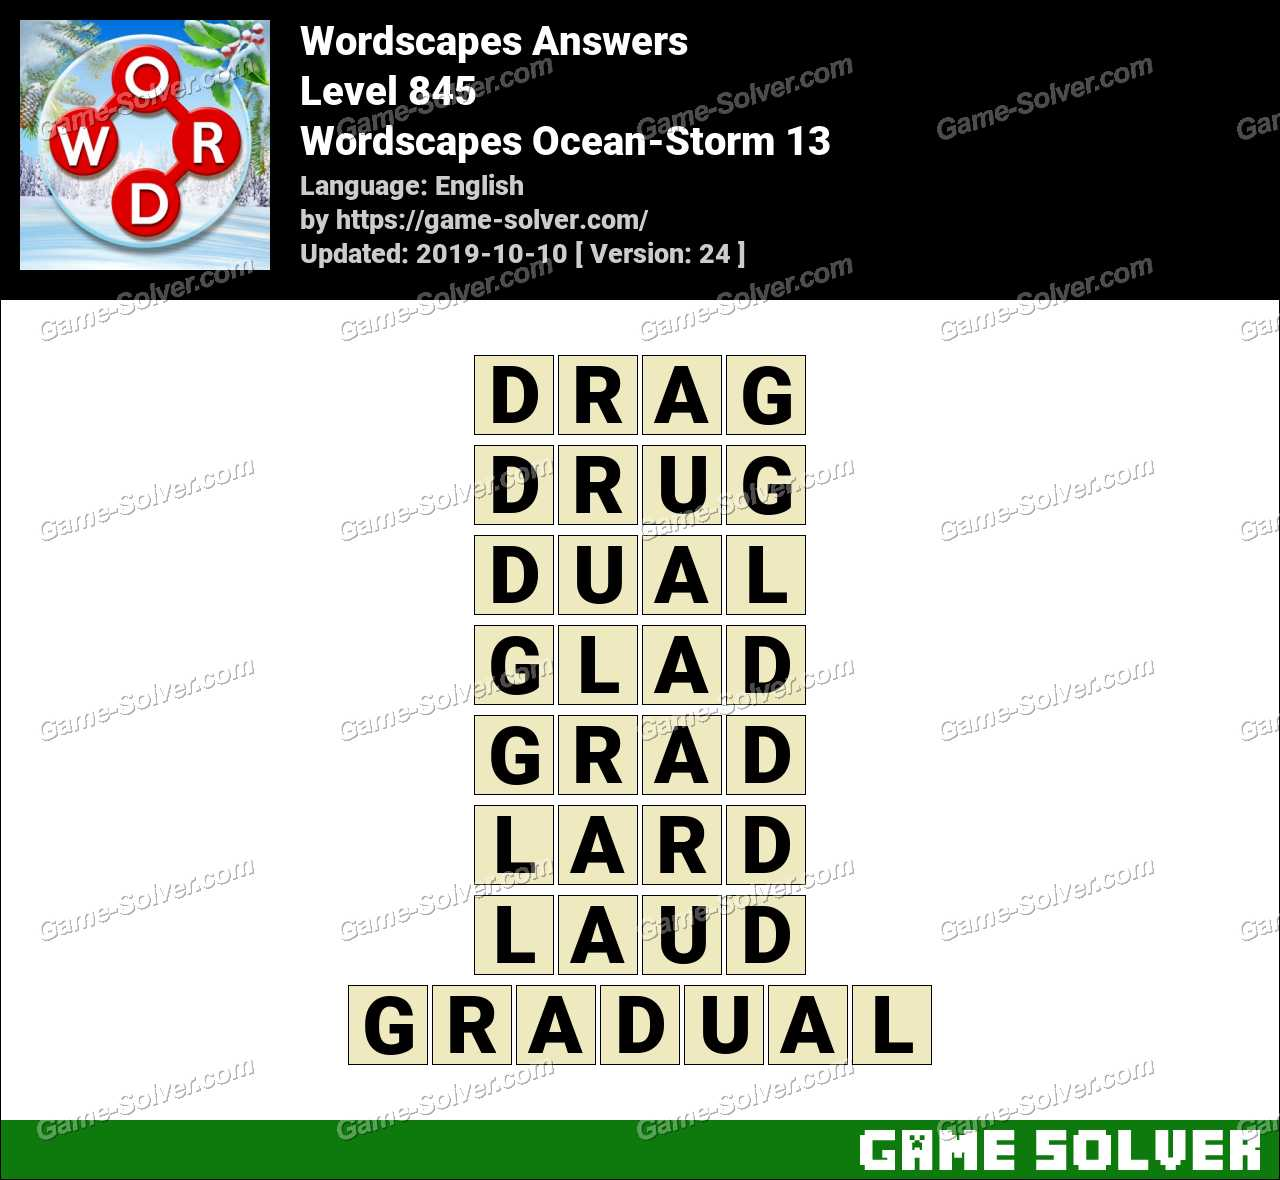 Wordscapes Ocean-Storm 13 Answers